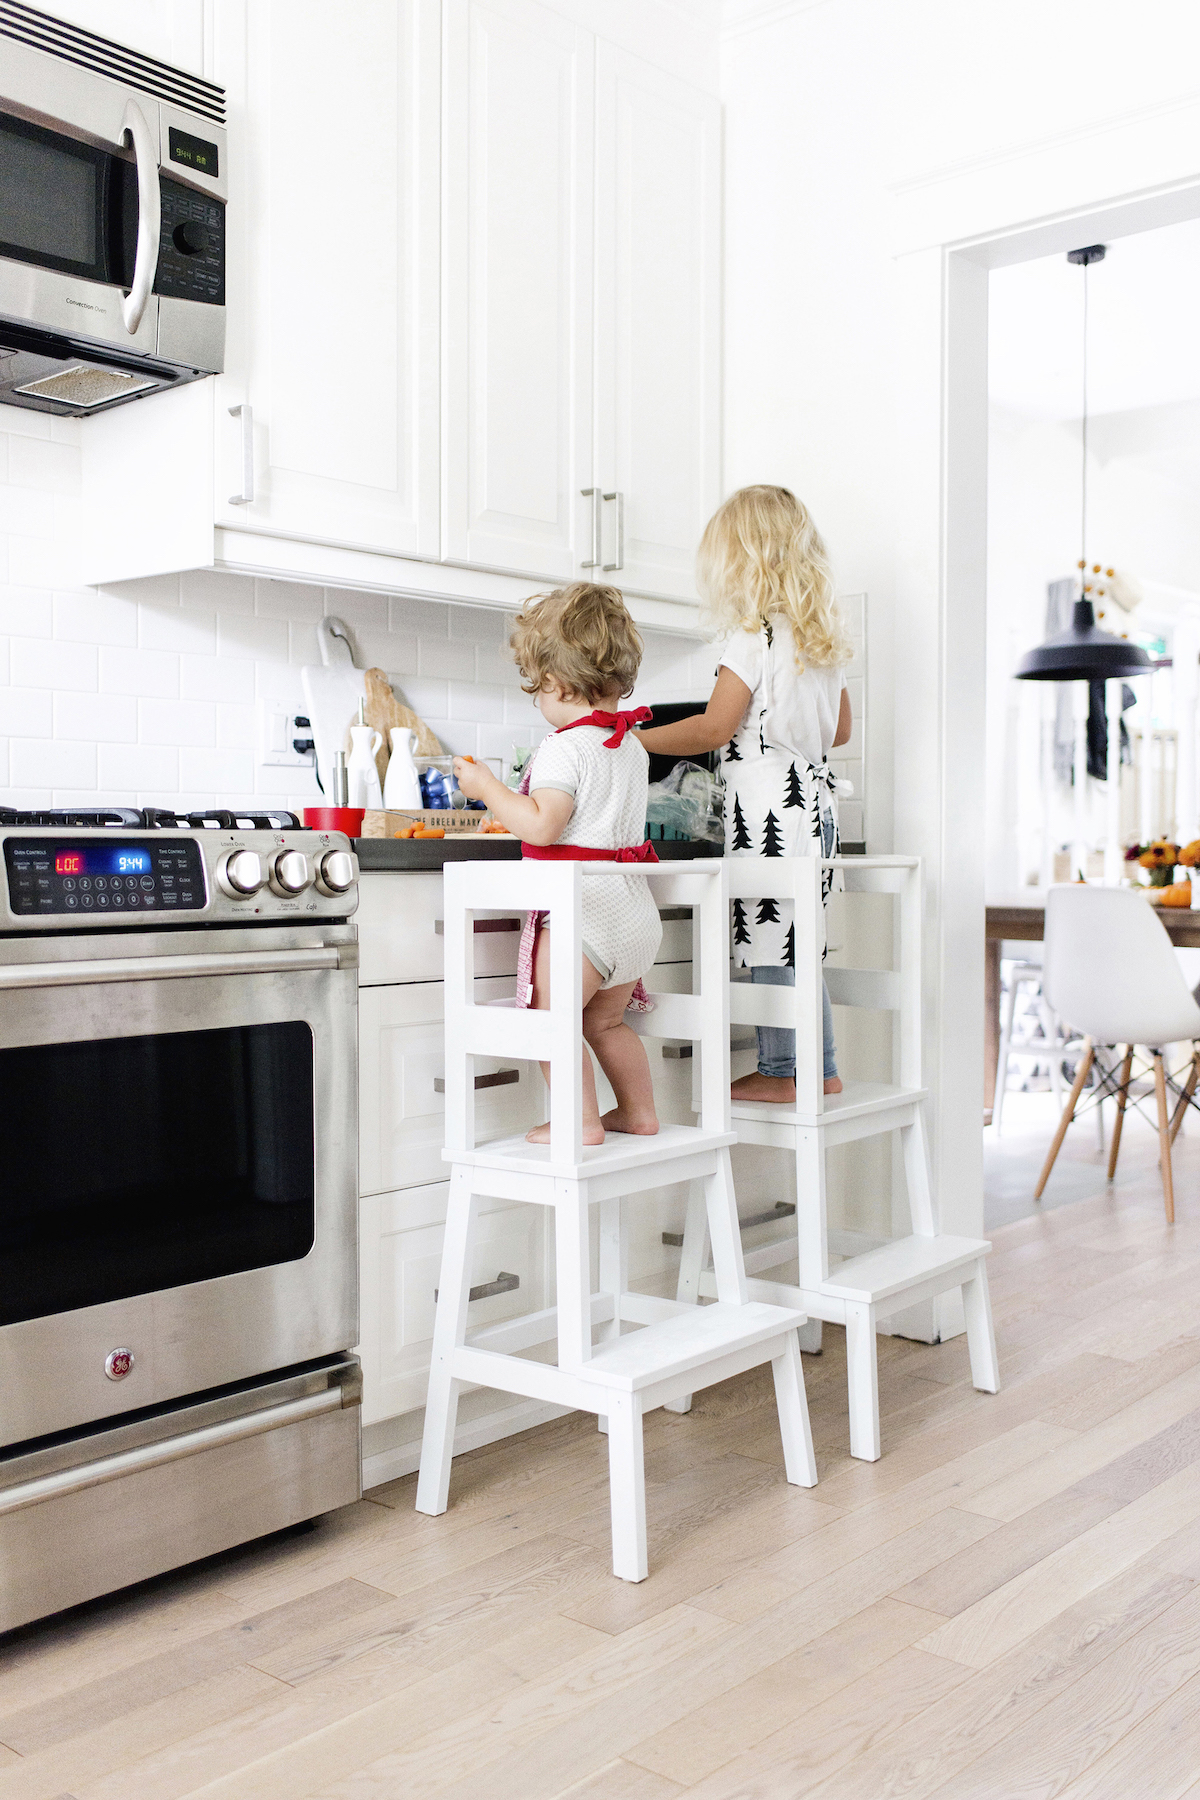 escabeau bois blanc cuisine ikea hacks mobilier enfant - blog déco - clem around the corner